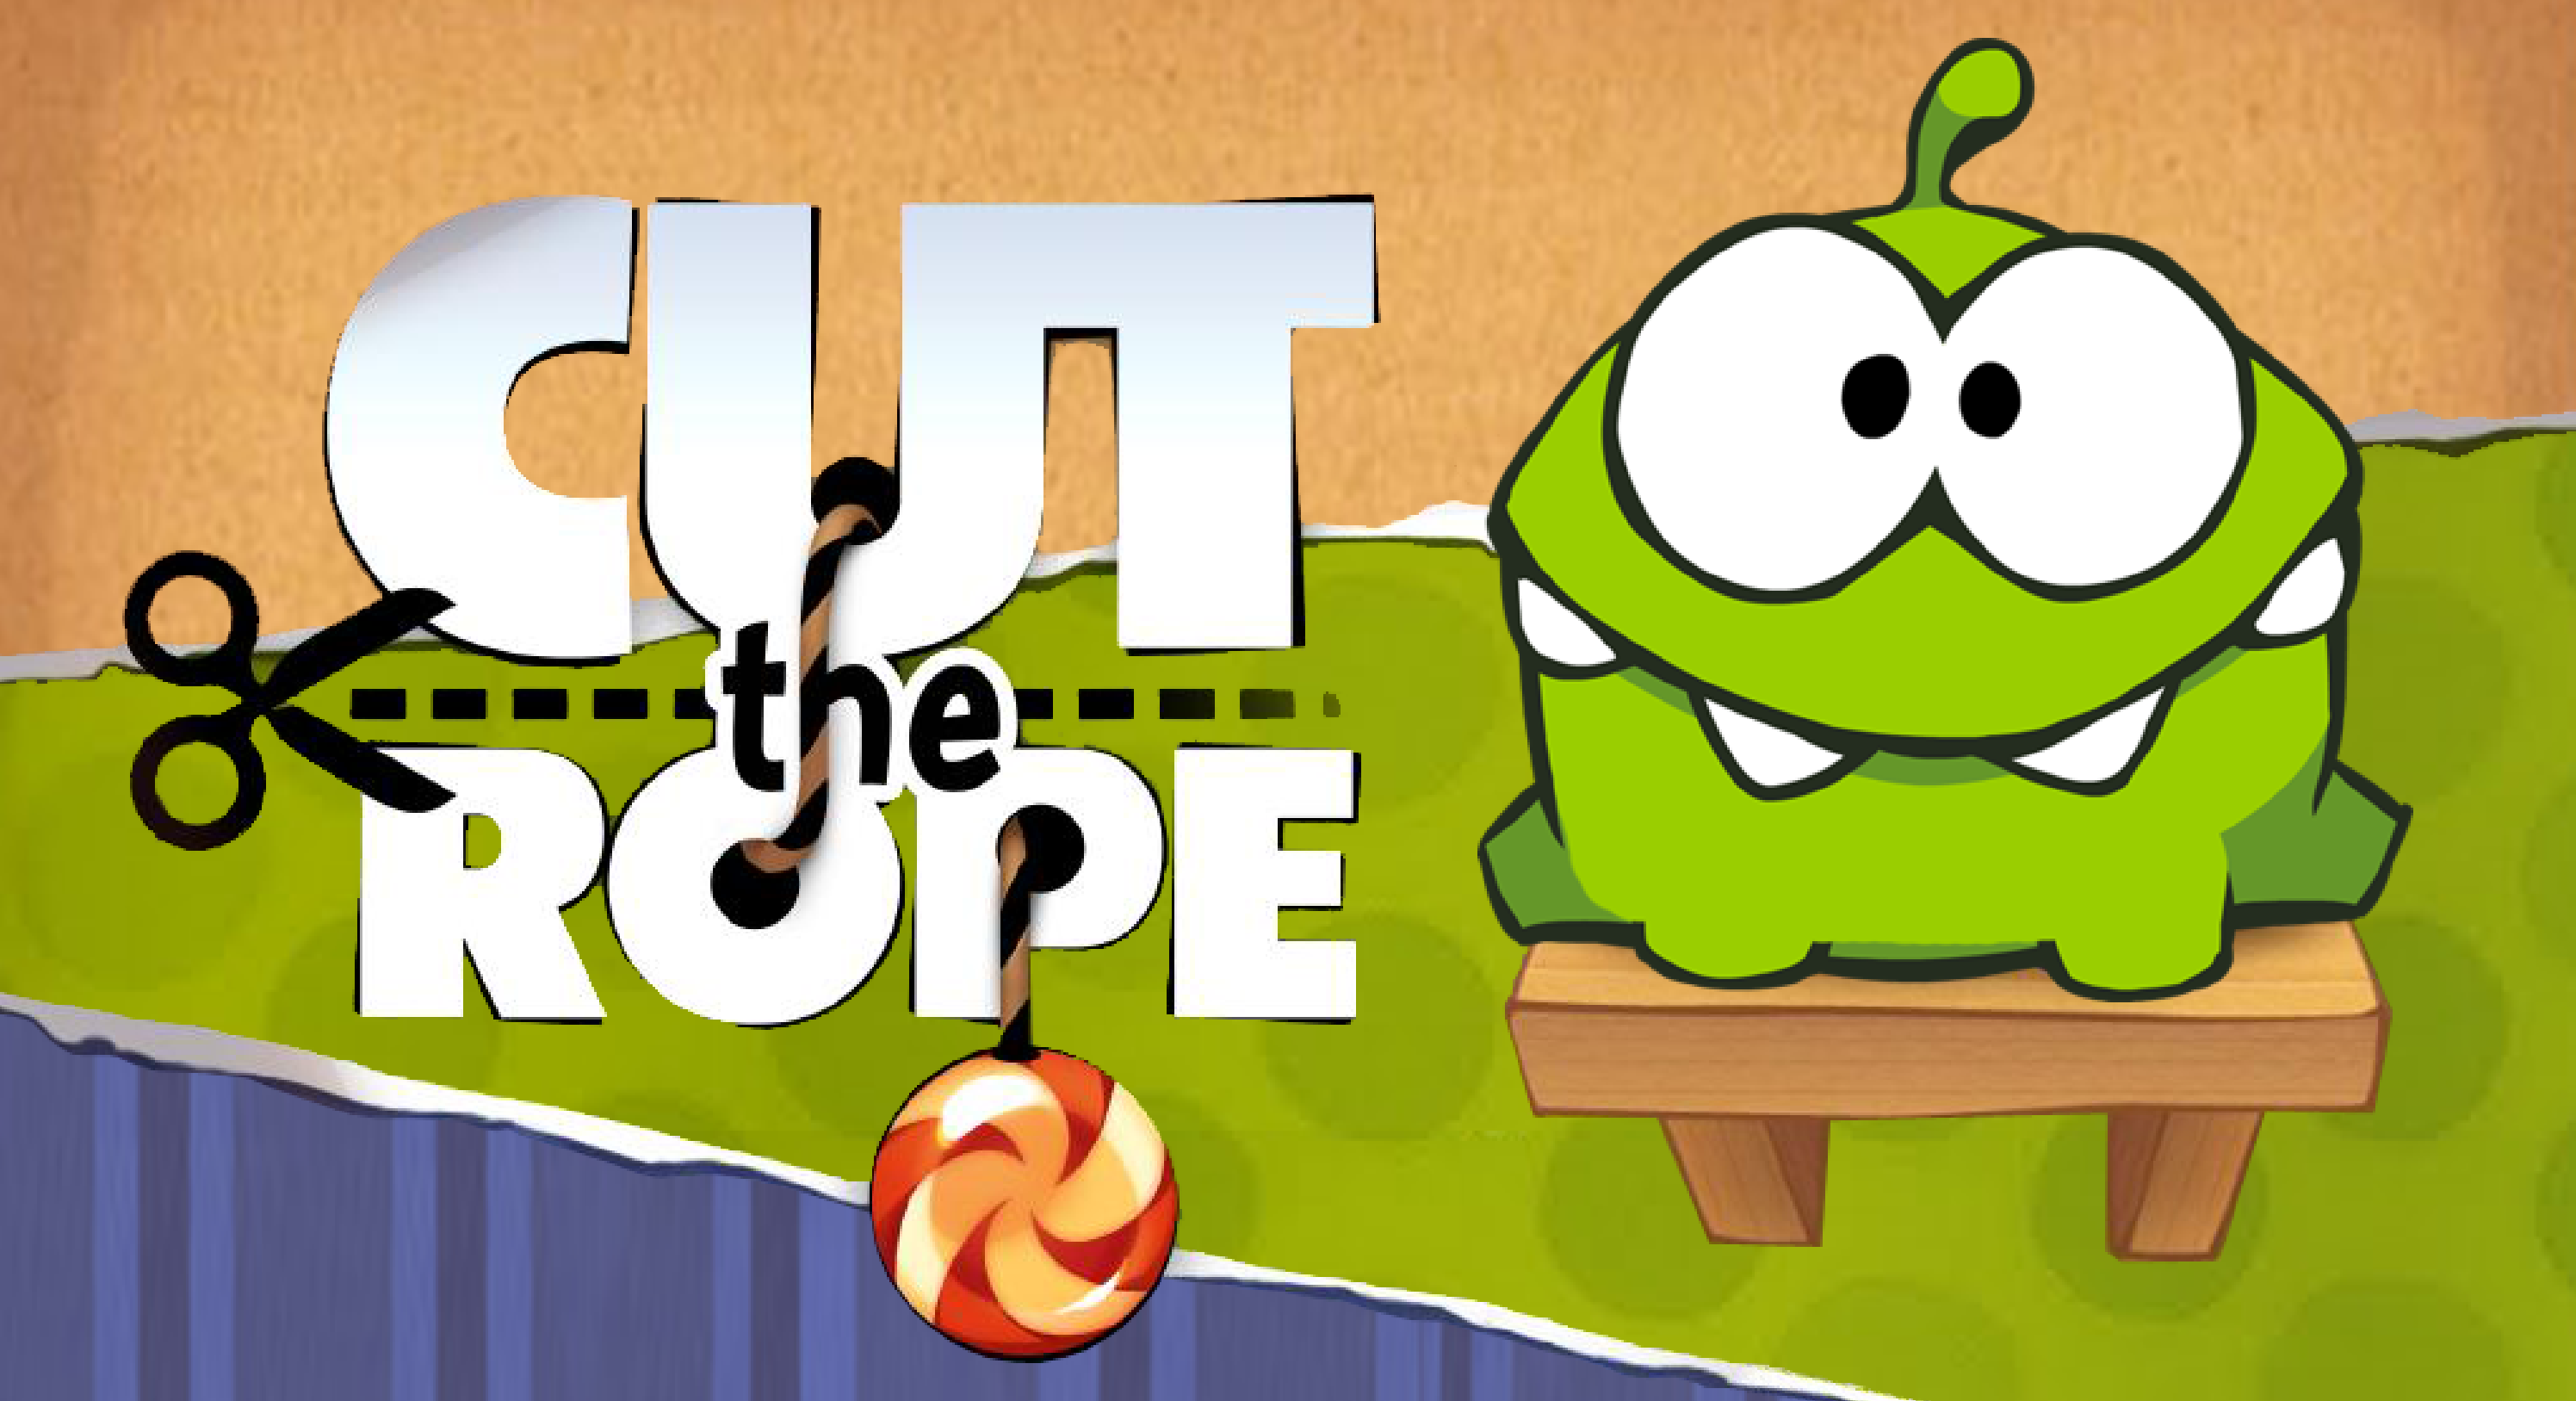 Contest: 'Cut the Rope' toy giveaway